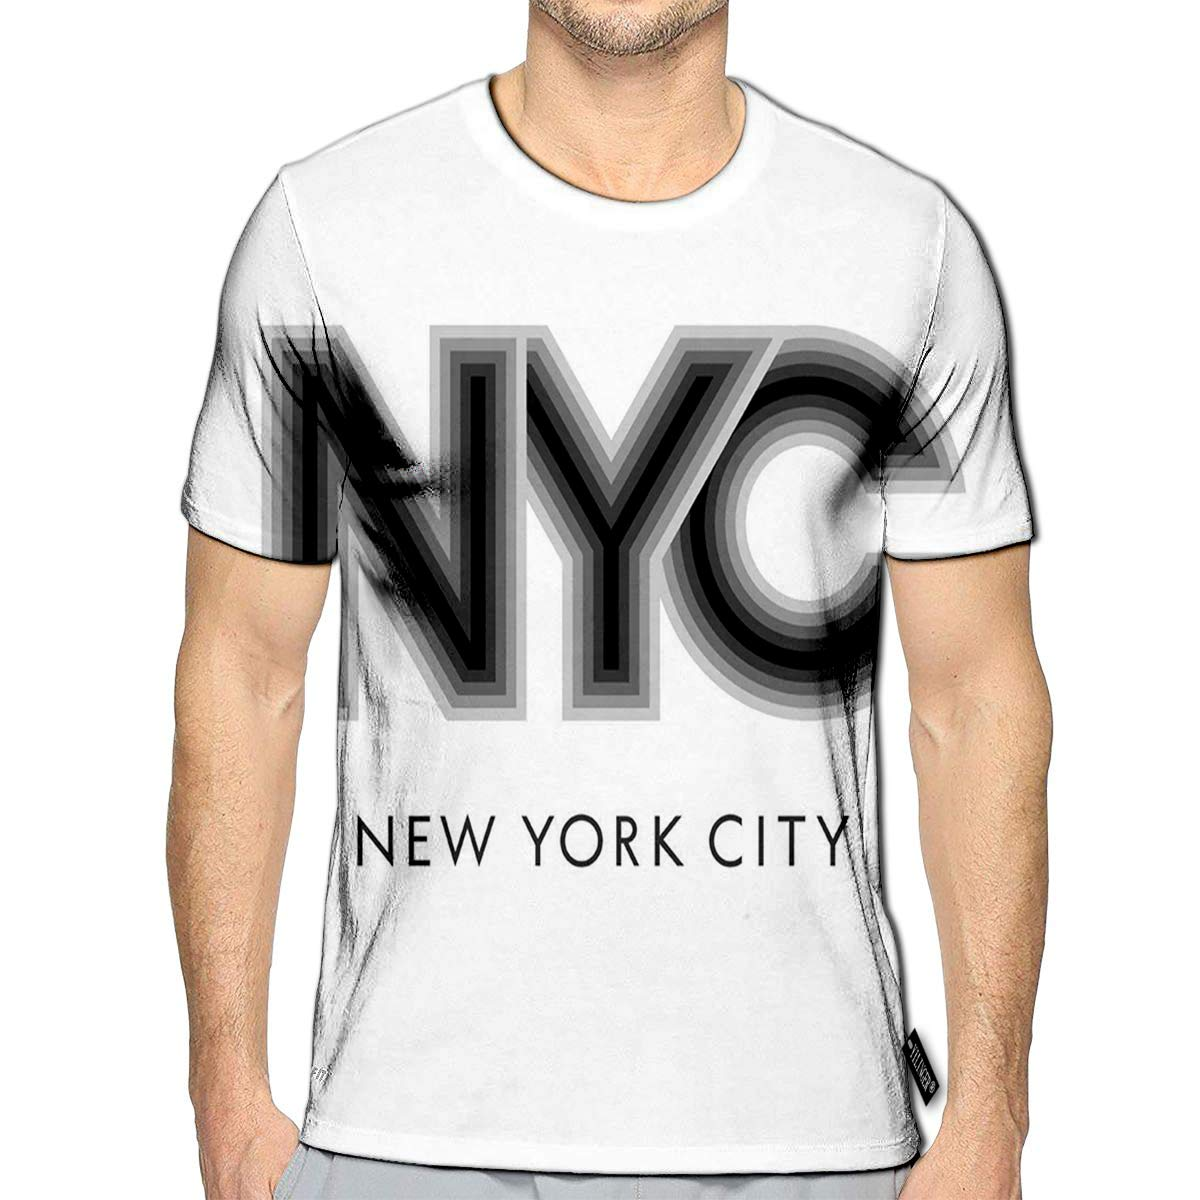 3D Printed T-Shirts New York City America Flag Varsity Other Uses GRAP Short Sleeve Tops Tees